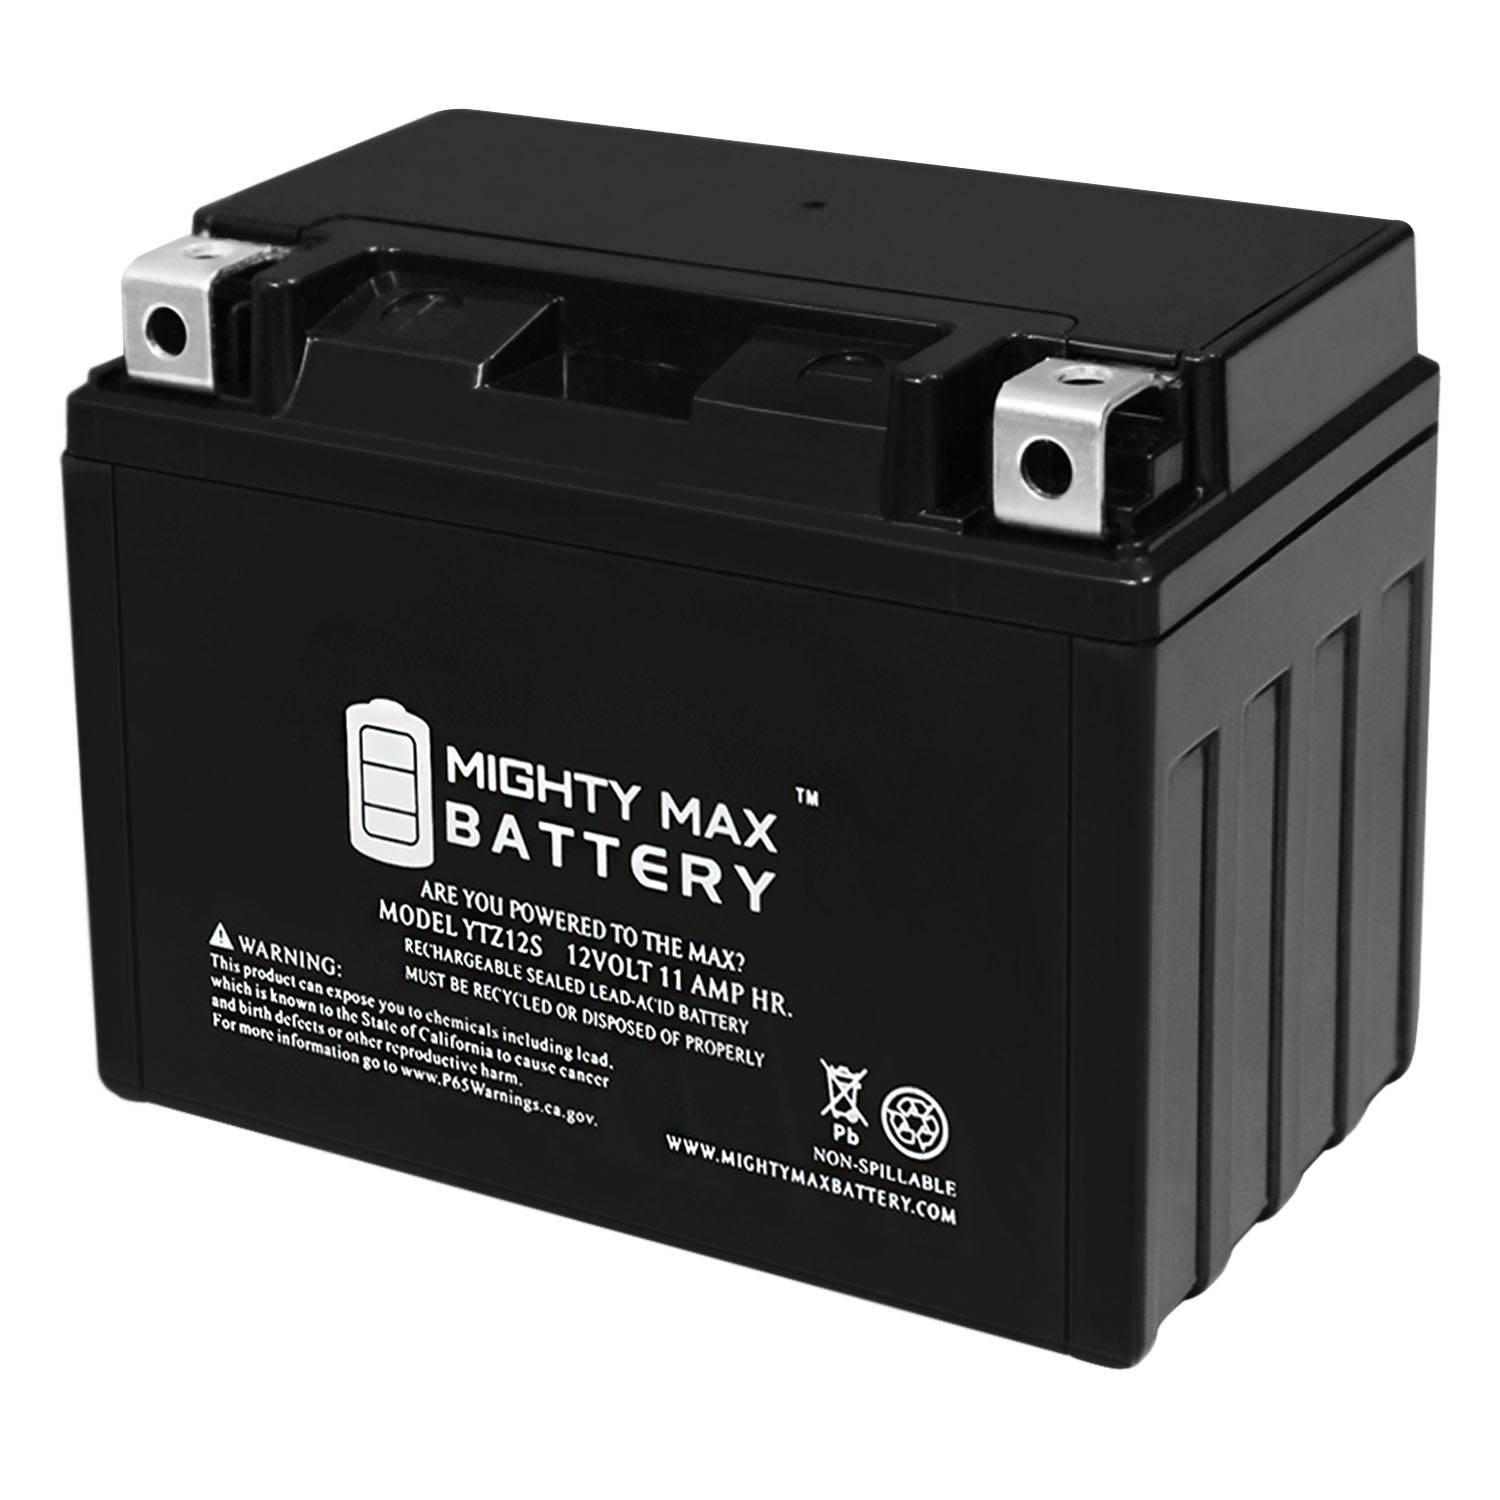 Mightymaxbattery YTZ12S 12V 11Ah Battery for Motorcycle Dirt Bike ATV Scooter